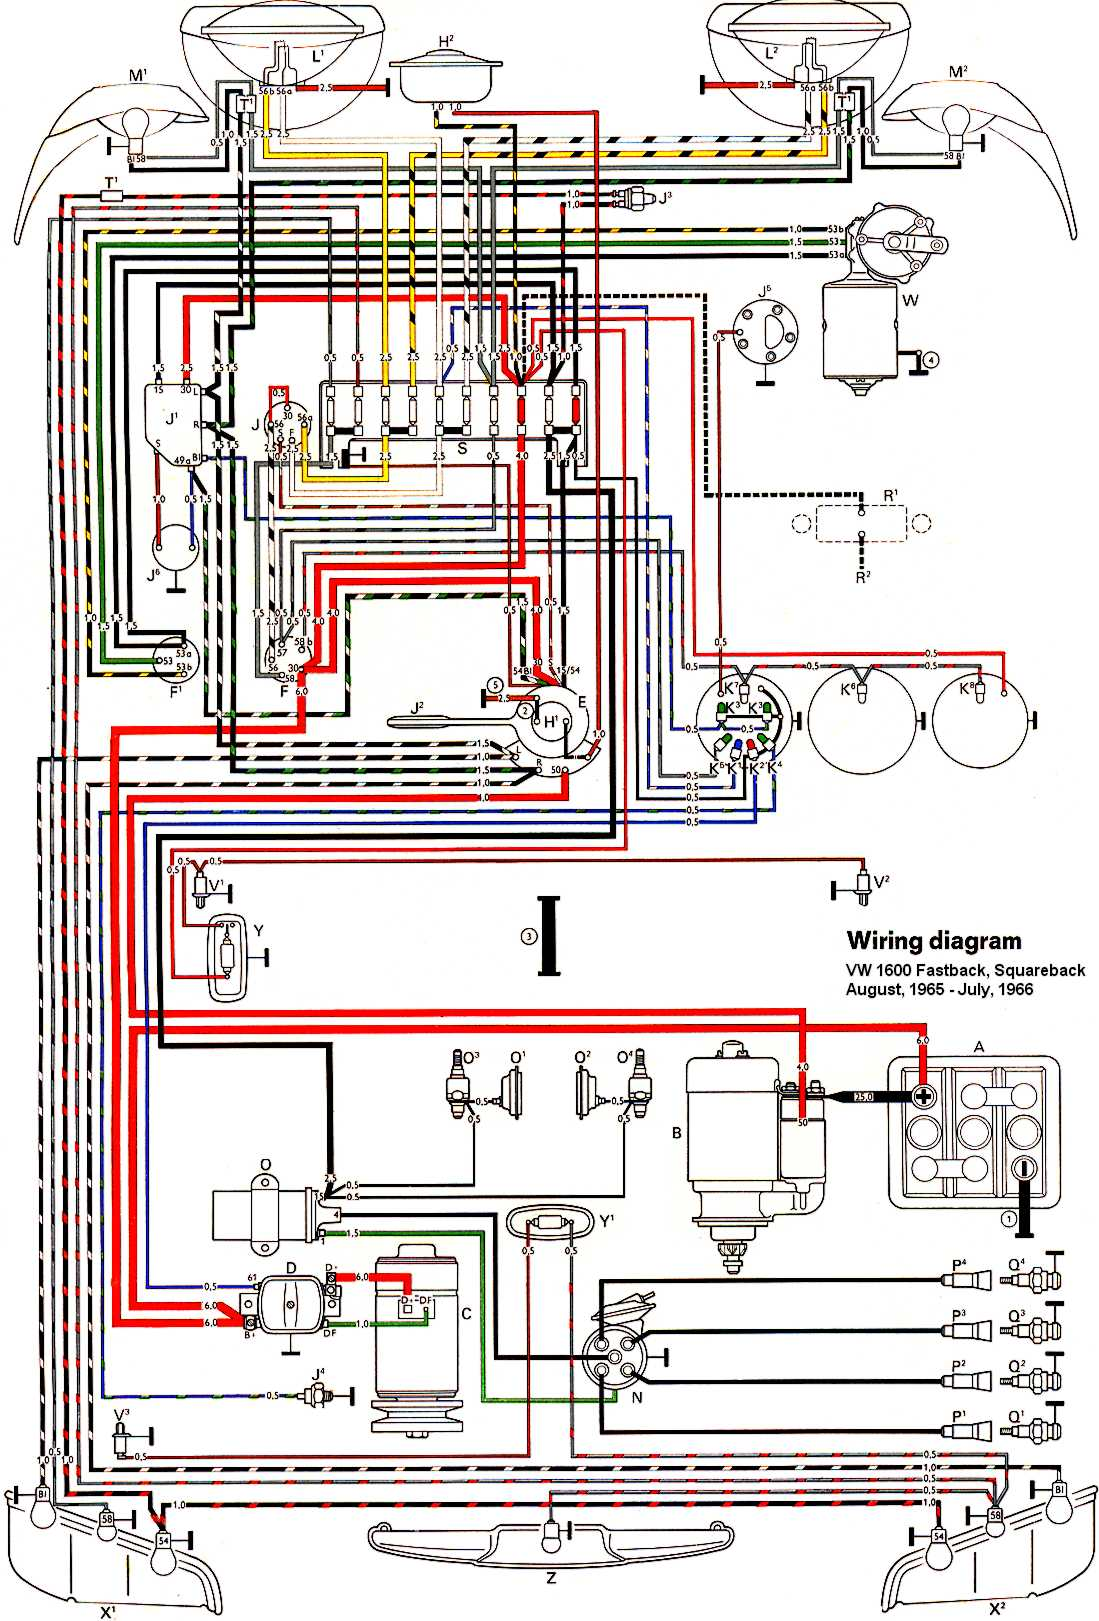 type3_1600_66 thesamba com type 3 wiring diagrams find wiring diagram for 87 ford f 150 at gsmportal.co